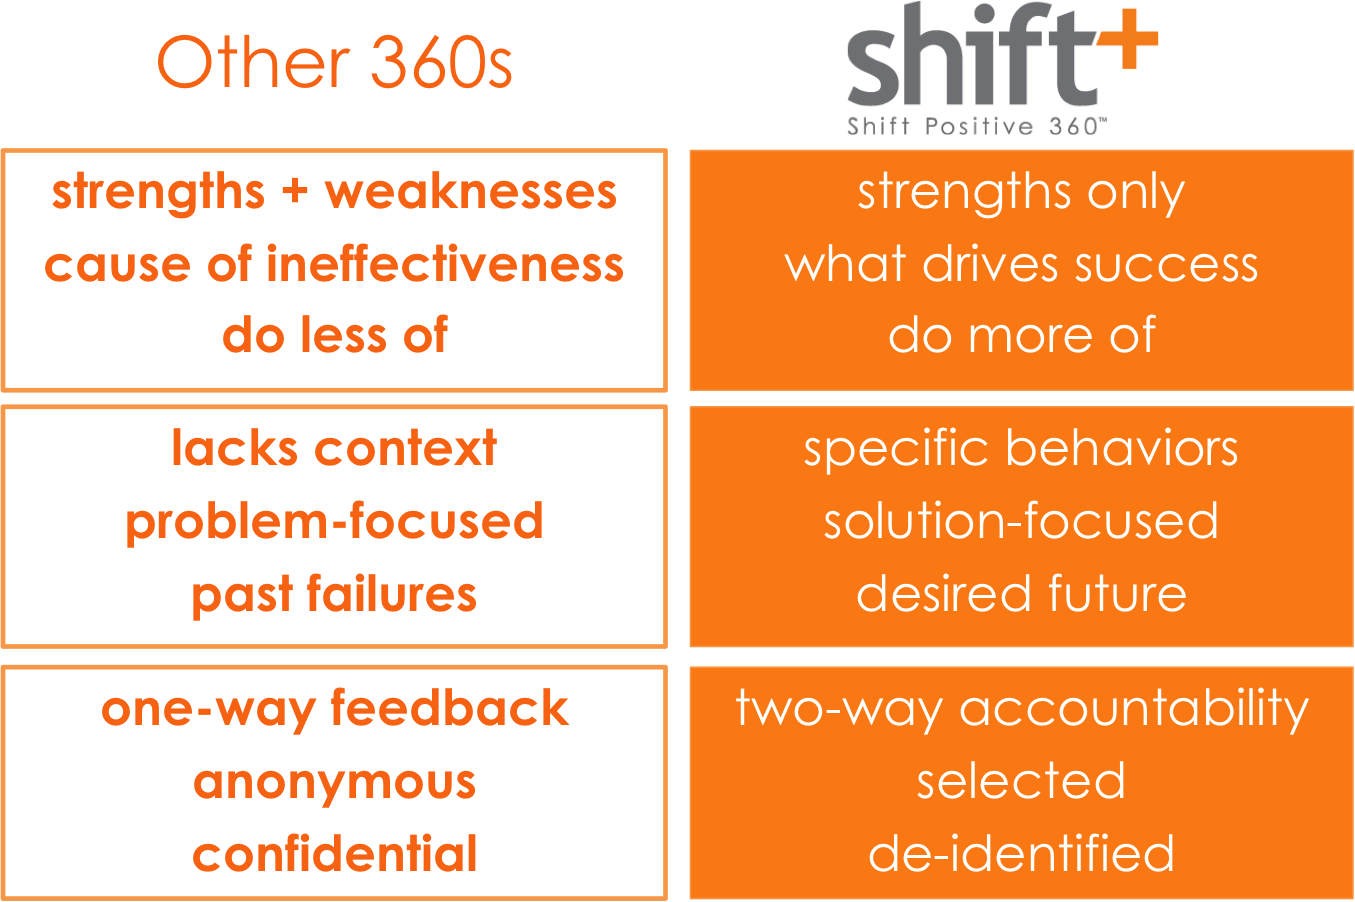 shift positive ostrich coaching consulting pete has a masters in applied positive psychology and created the shift 360 process five years ago